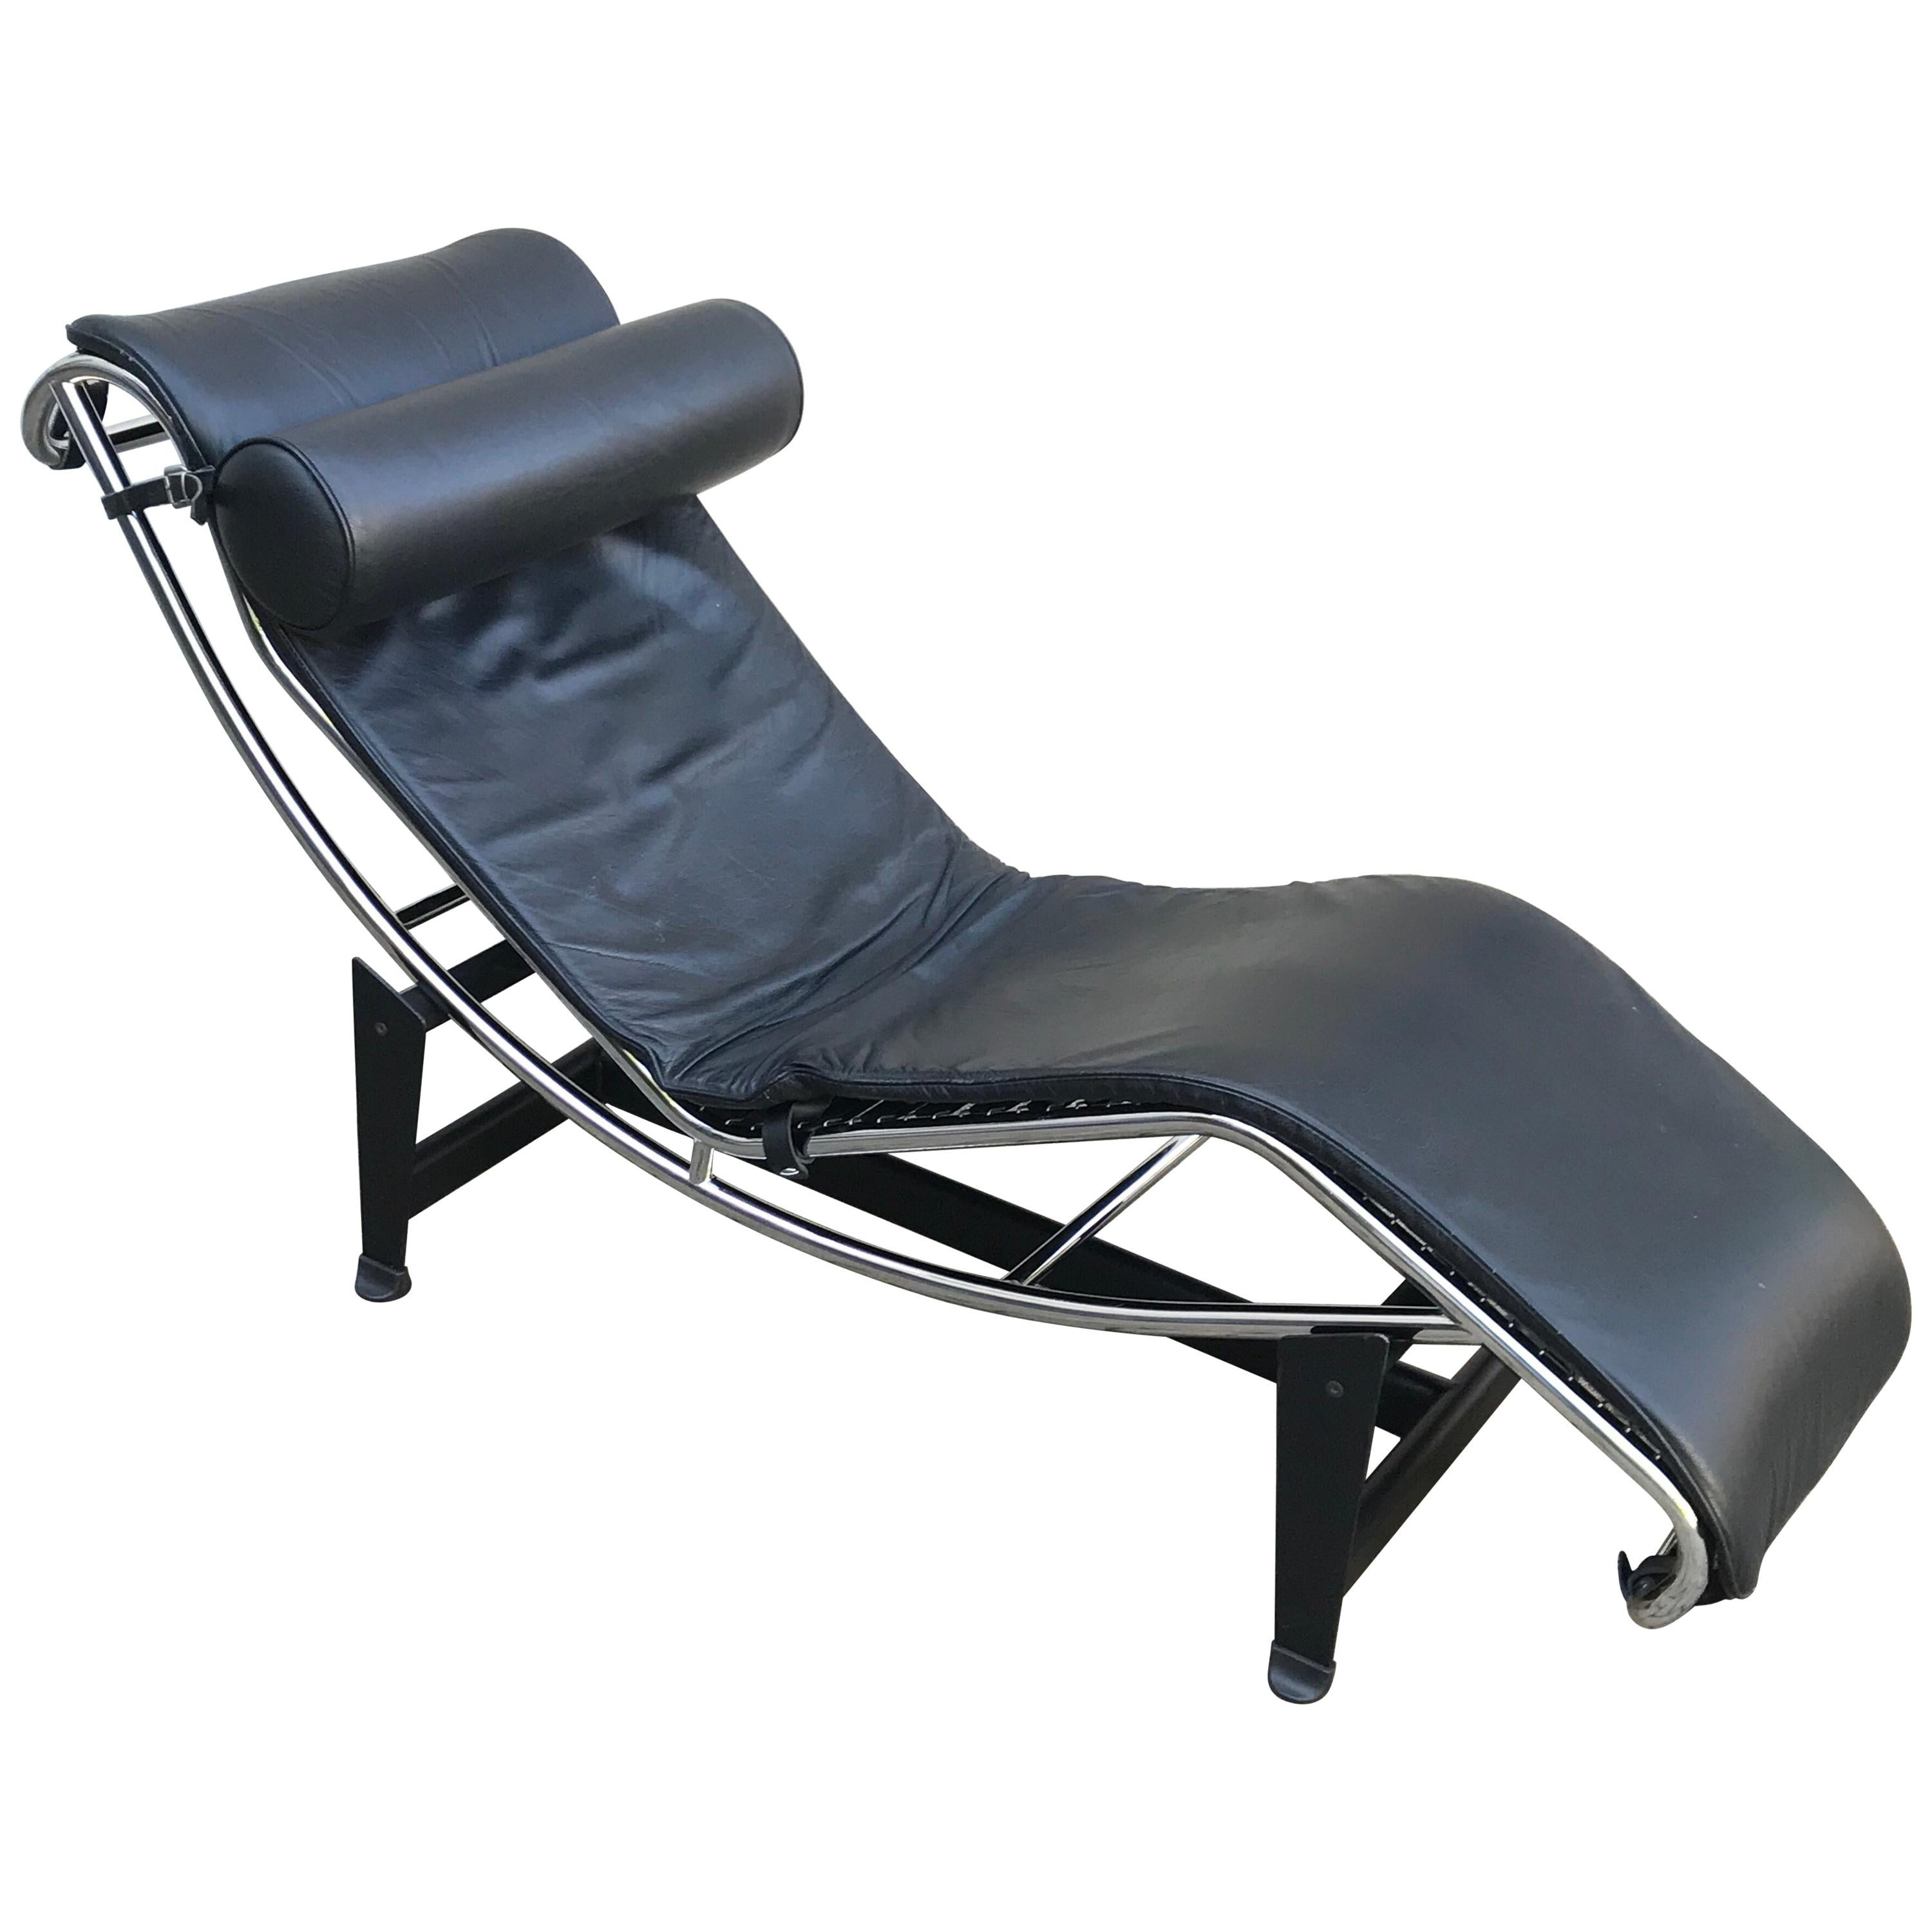 le corbusier lc4 black leather chaise lounge chair late 20th century italy